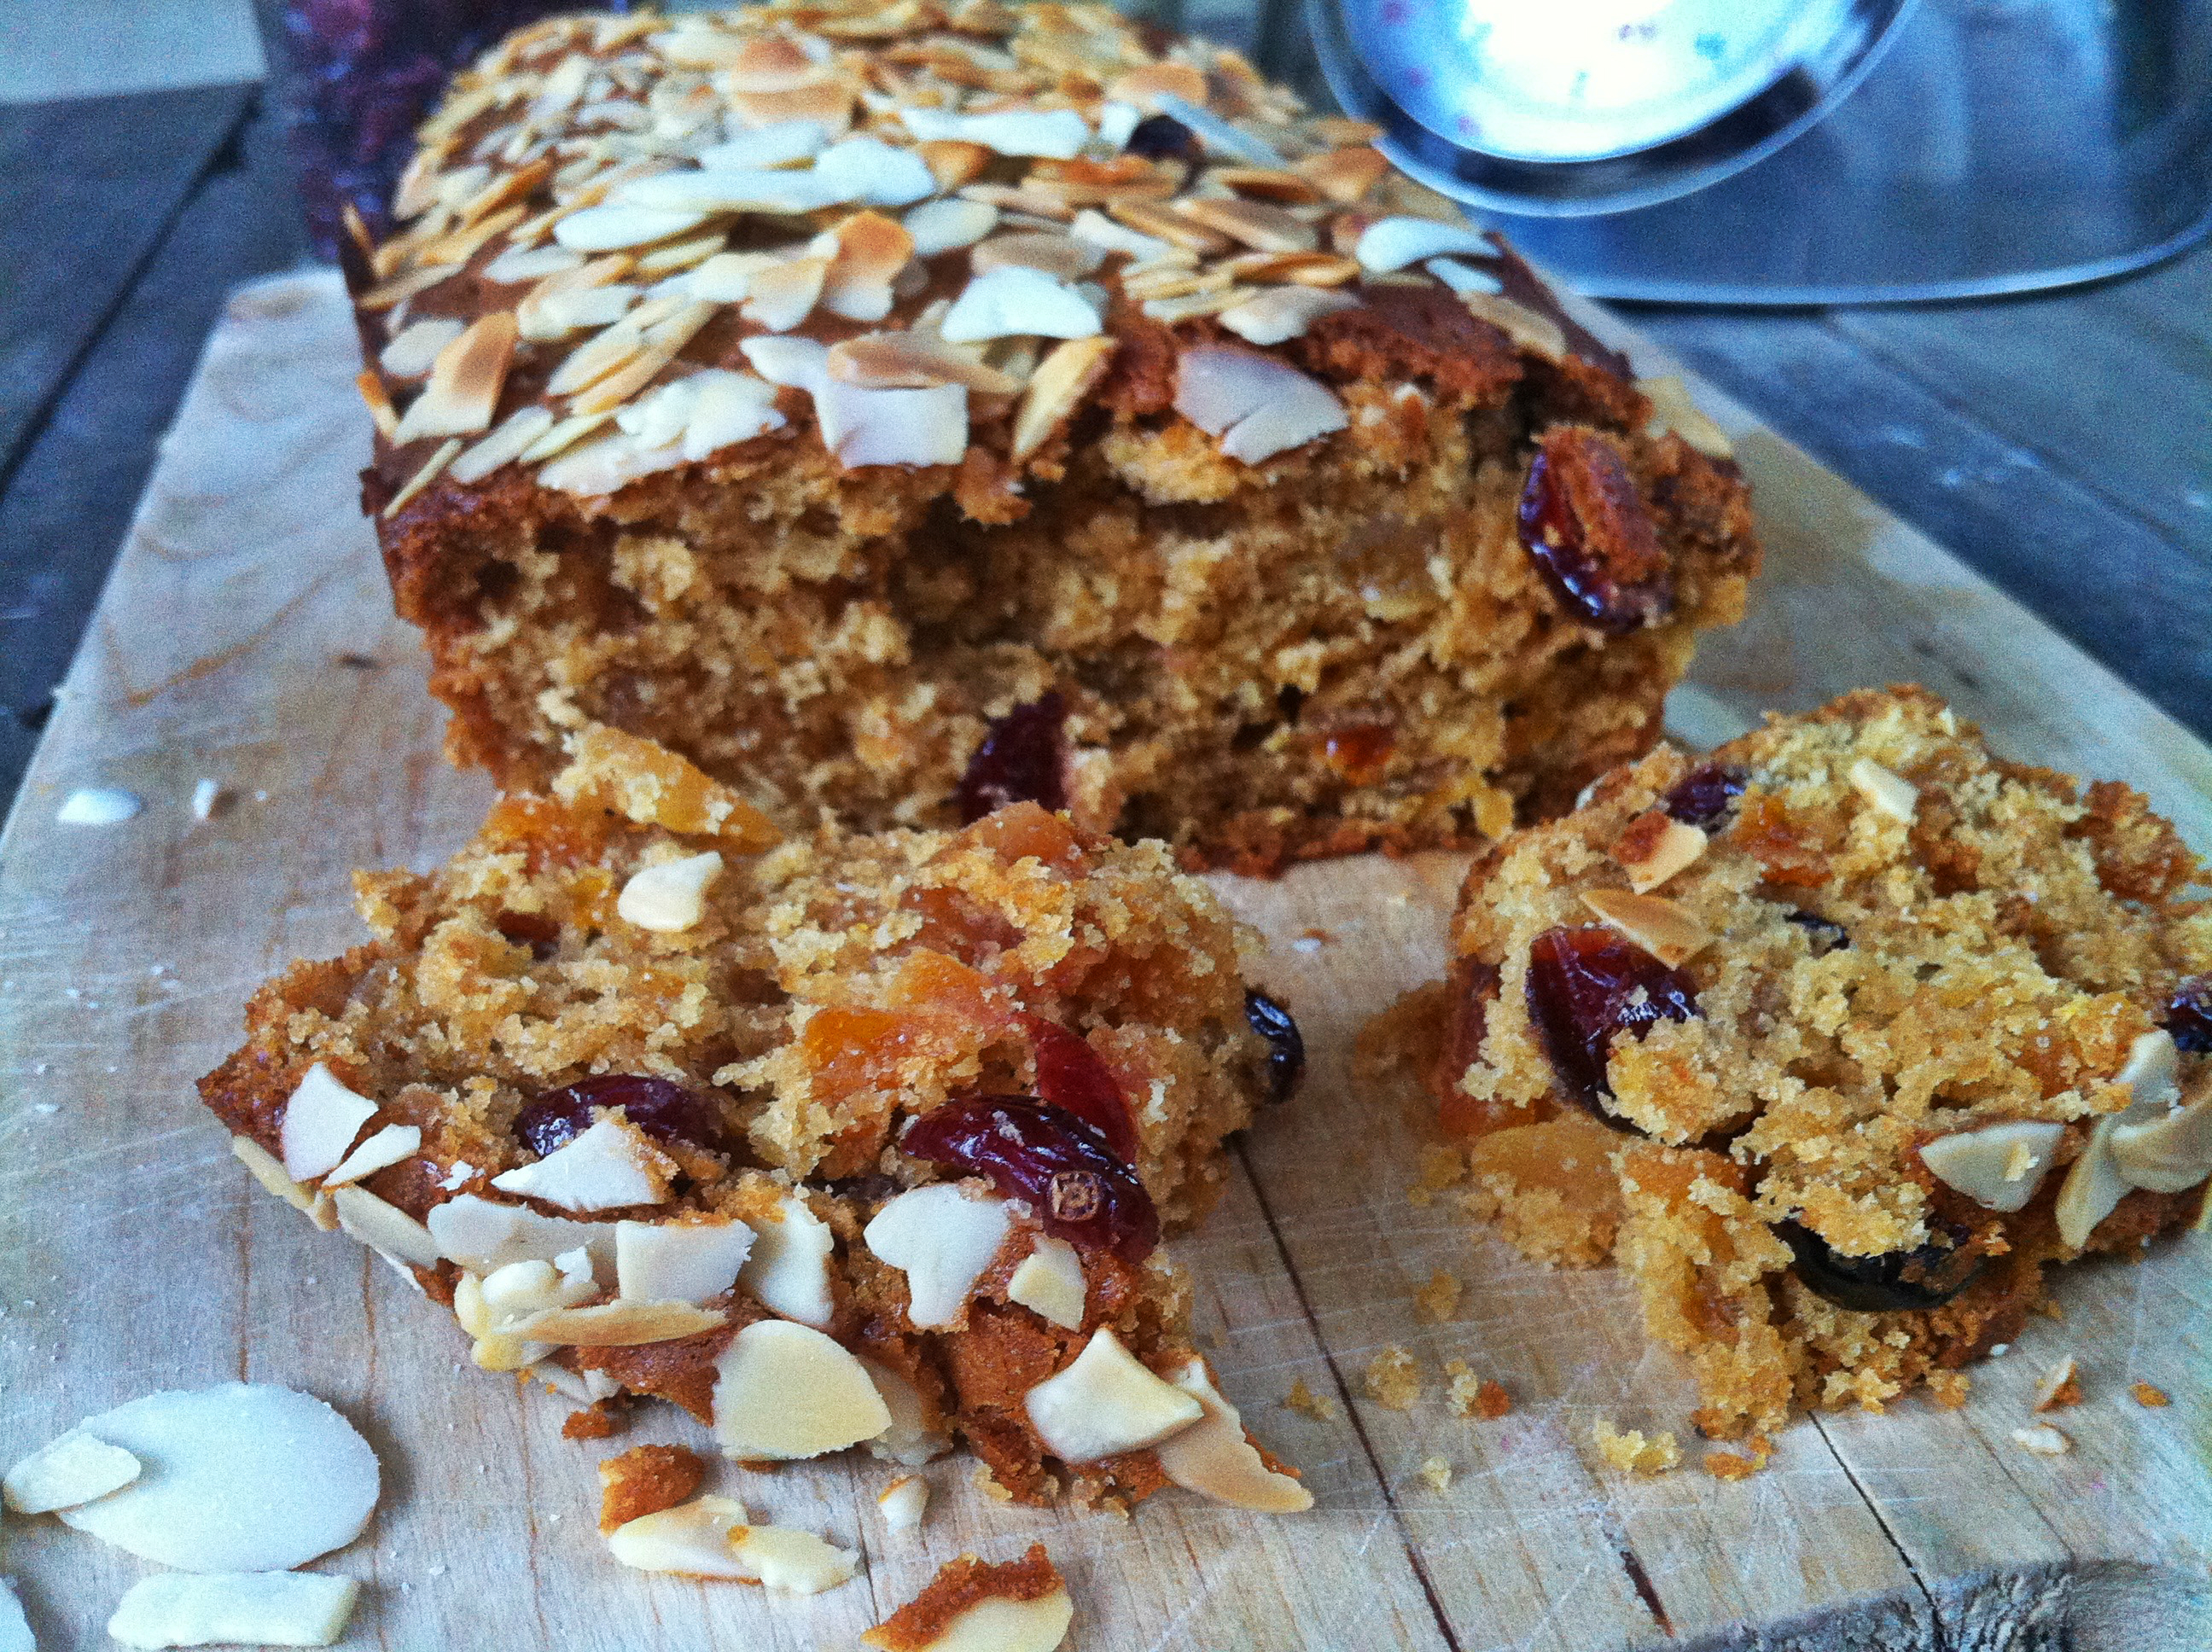 Almond & Apricot Loaf